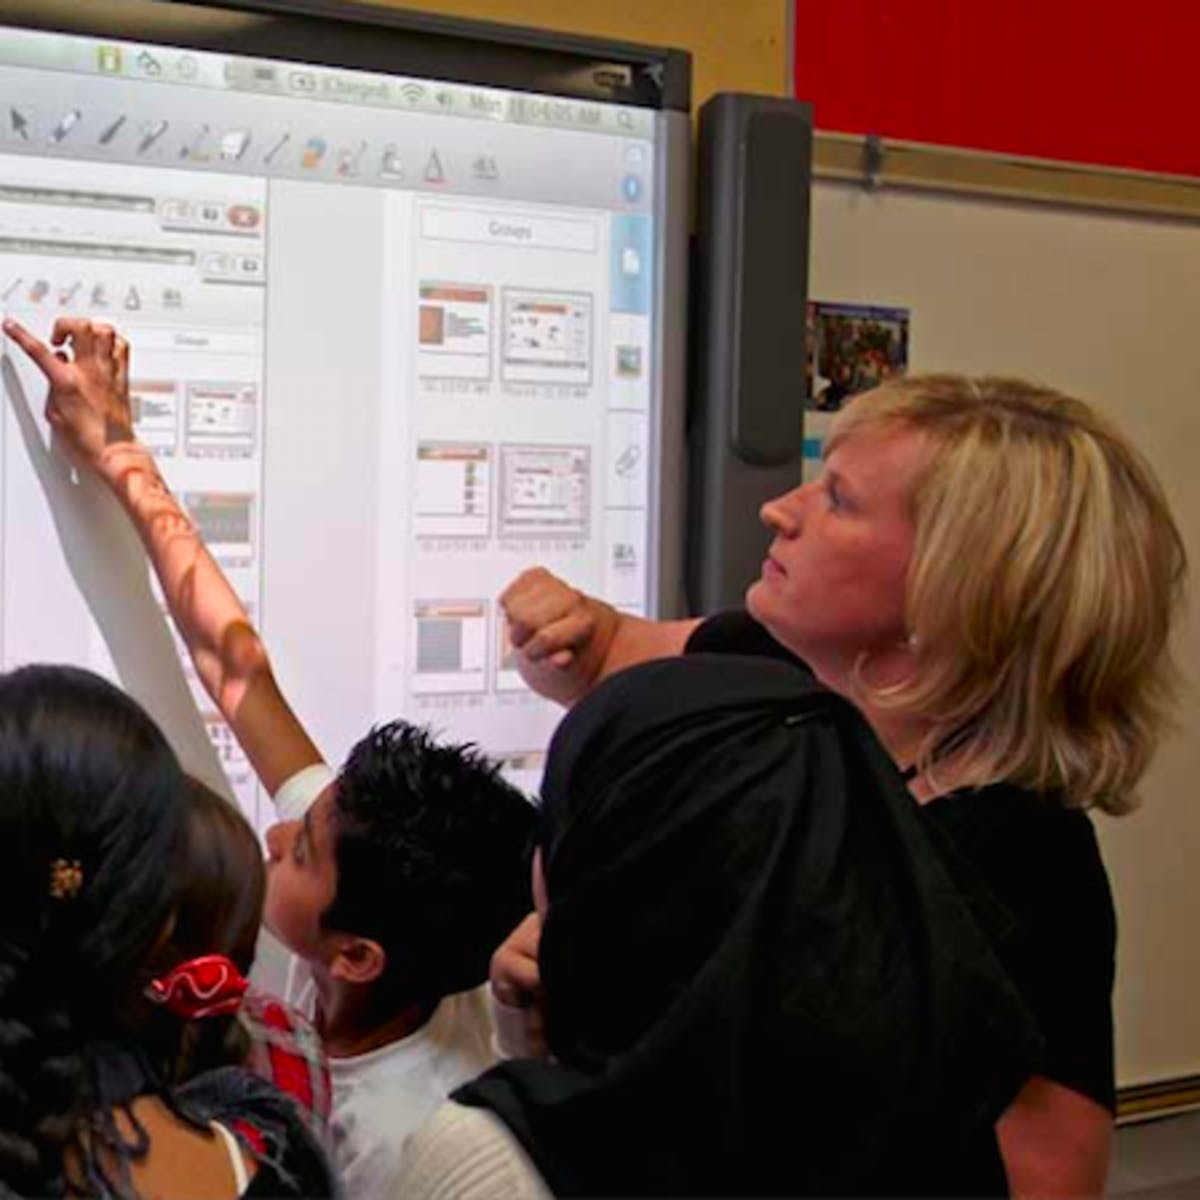 Integrating Technology in the K-12 Classroom